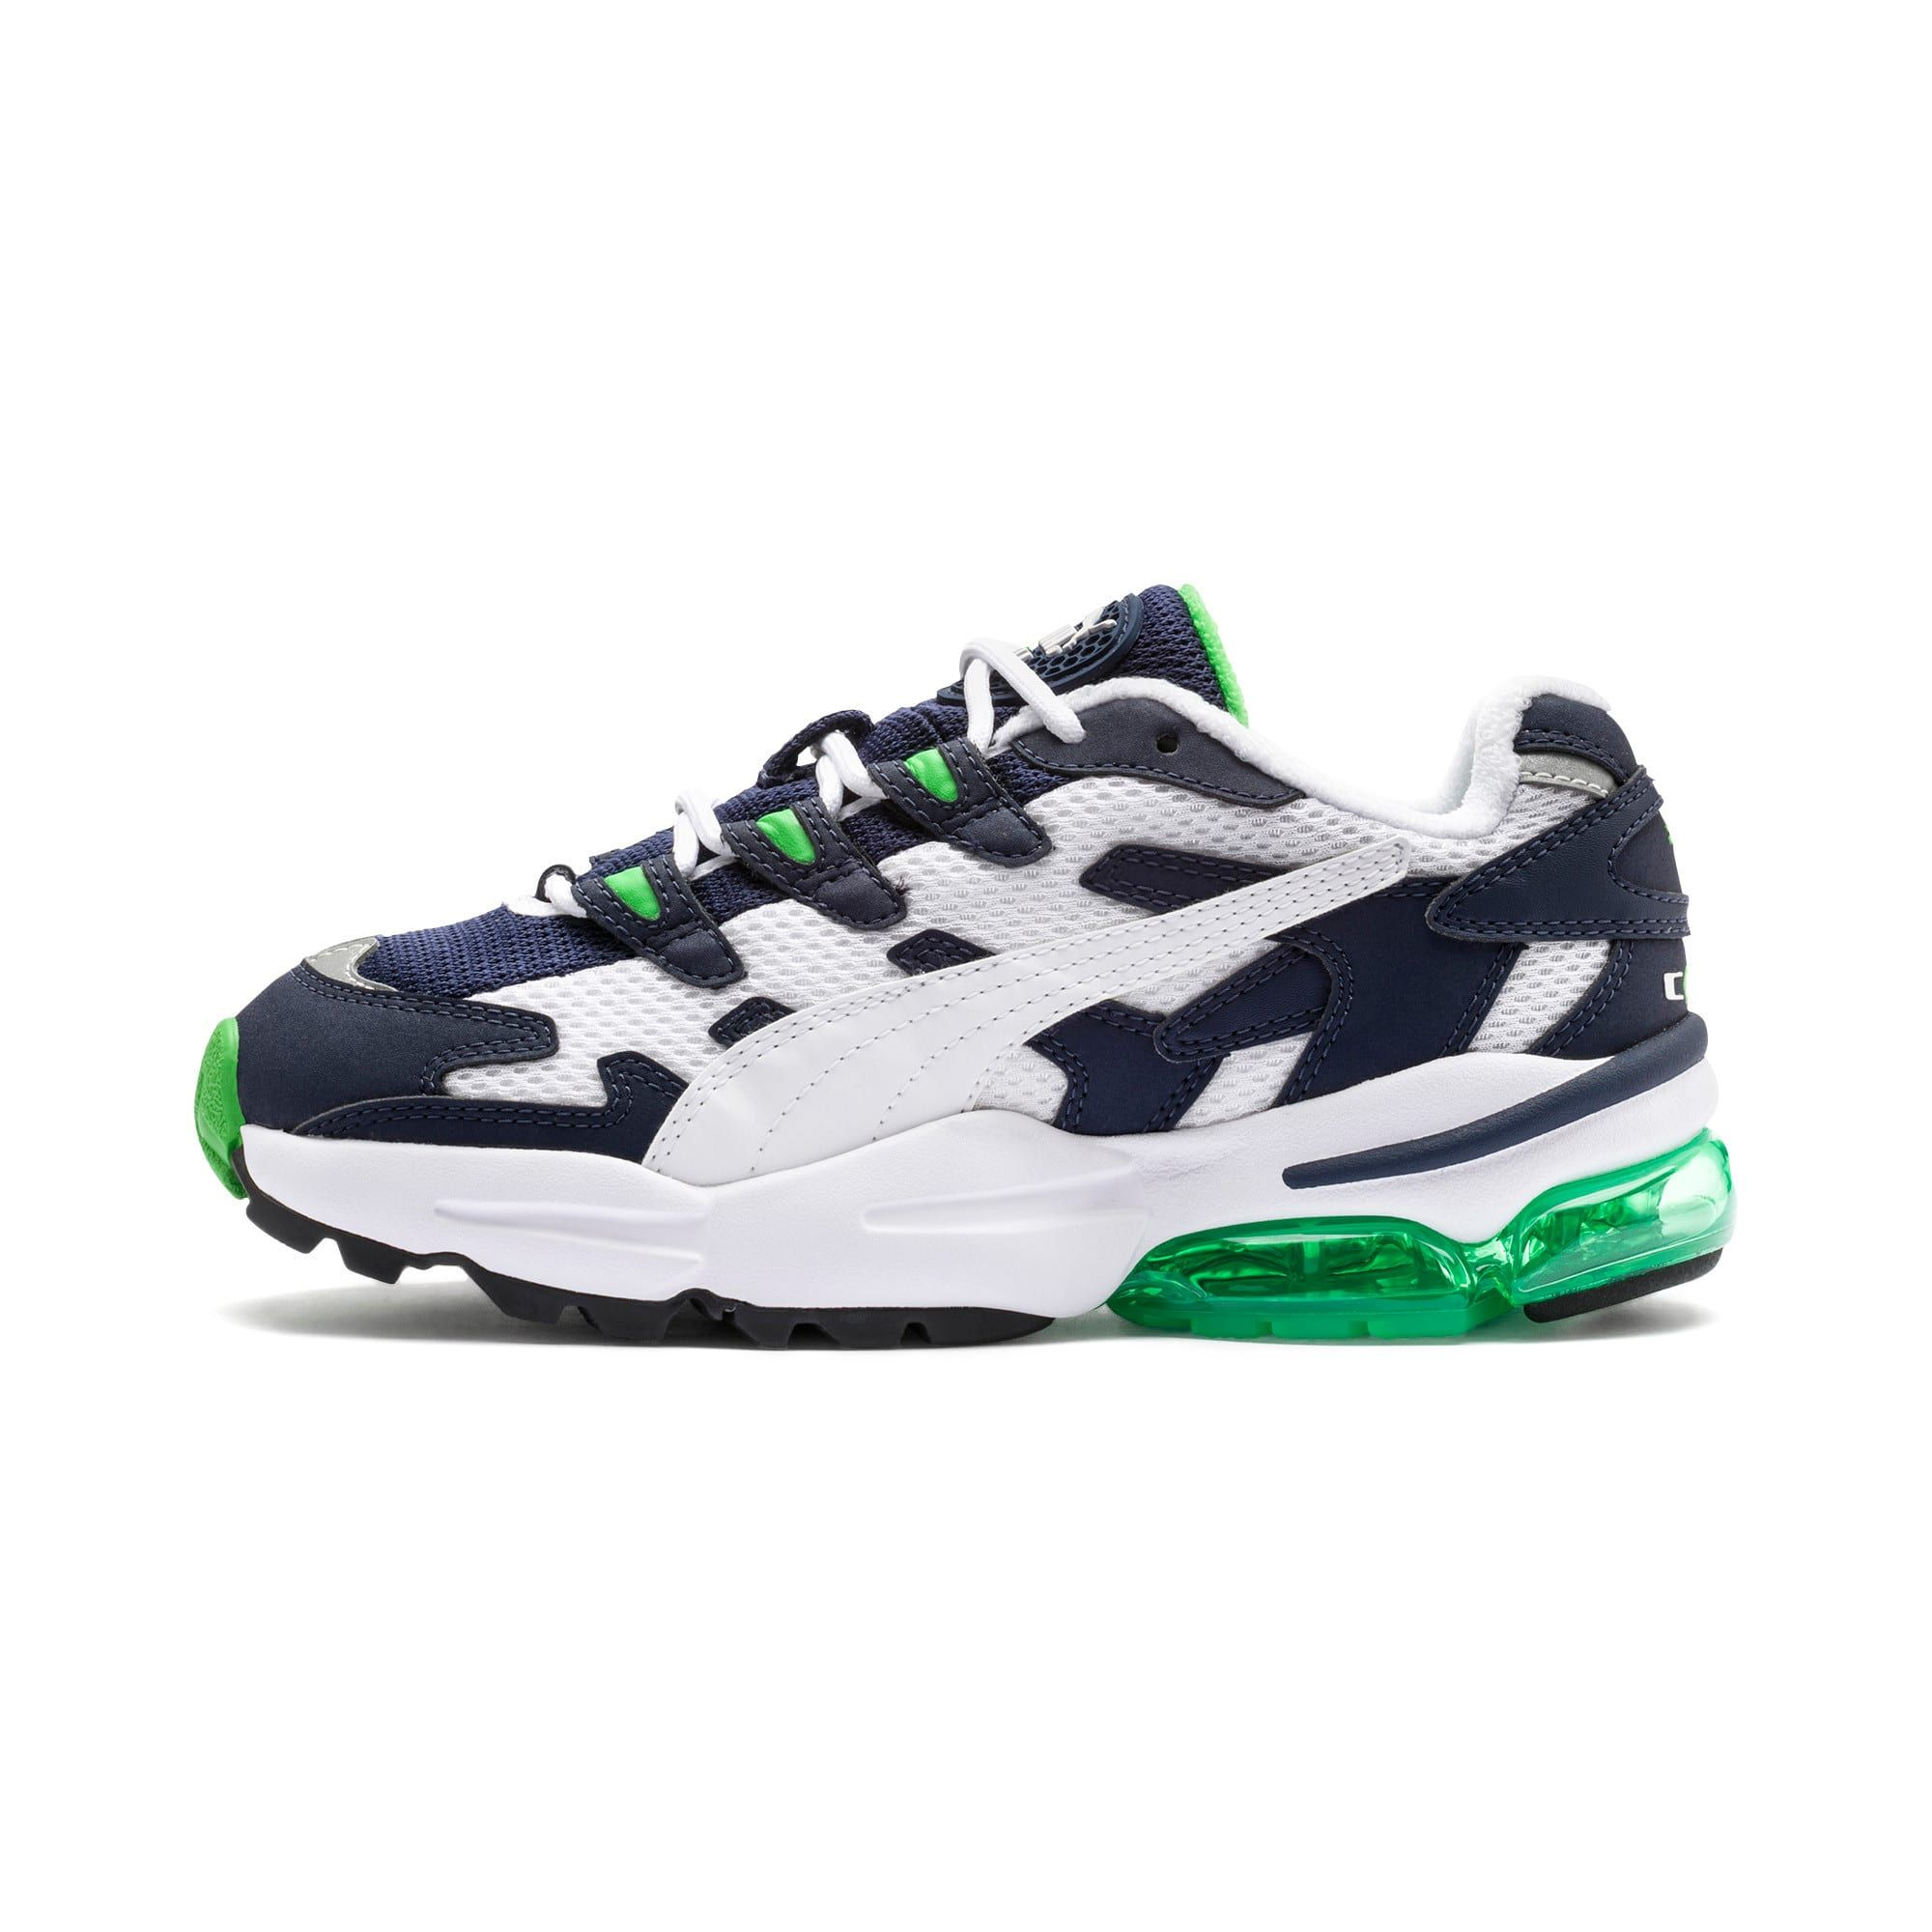 PUMA BENNY HOOPSTER Blanc Toile Chaussures pour homme...